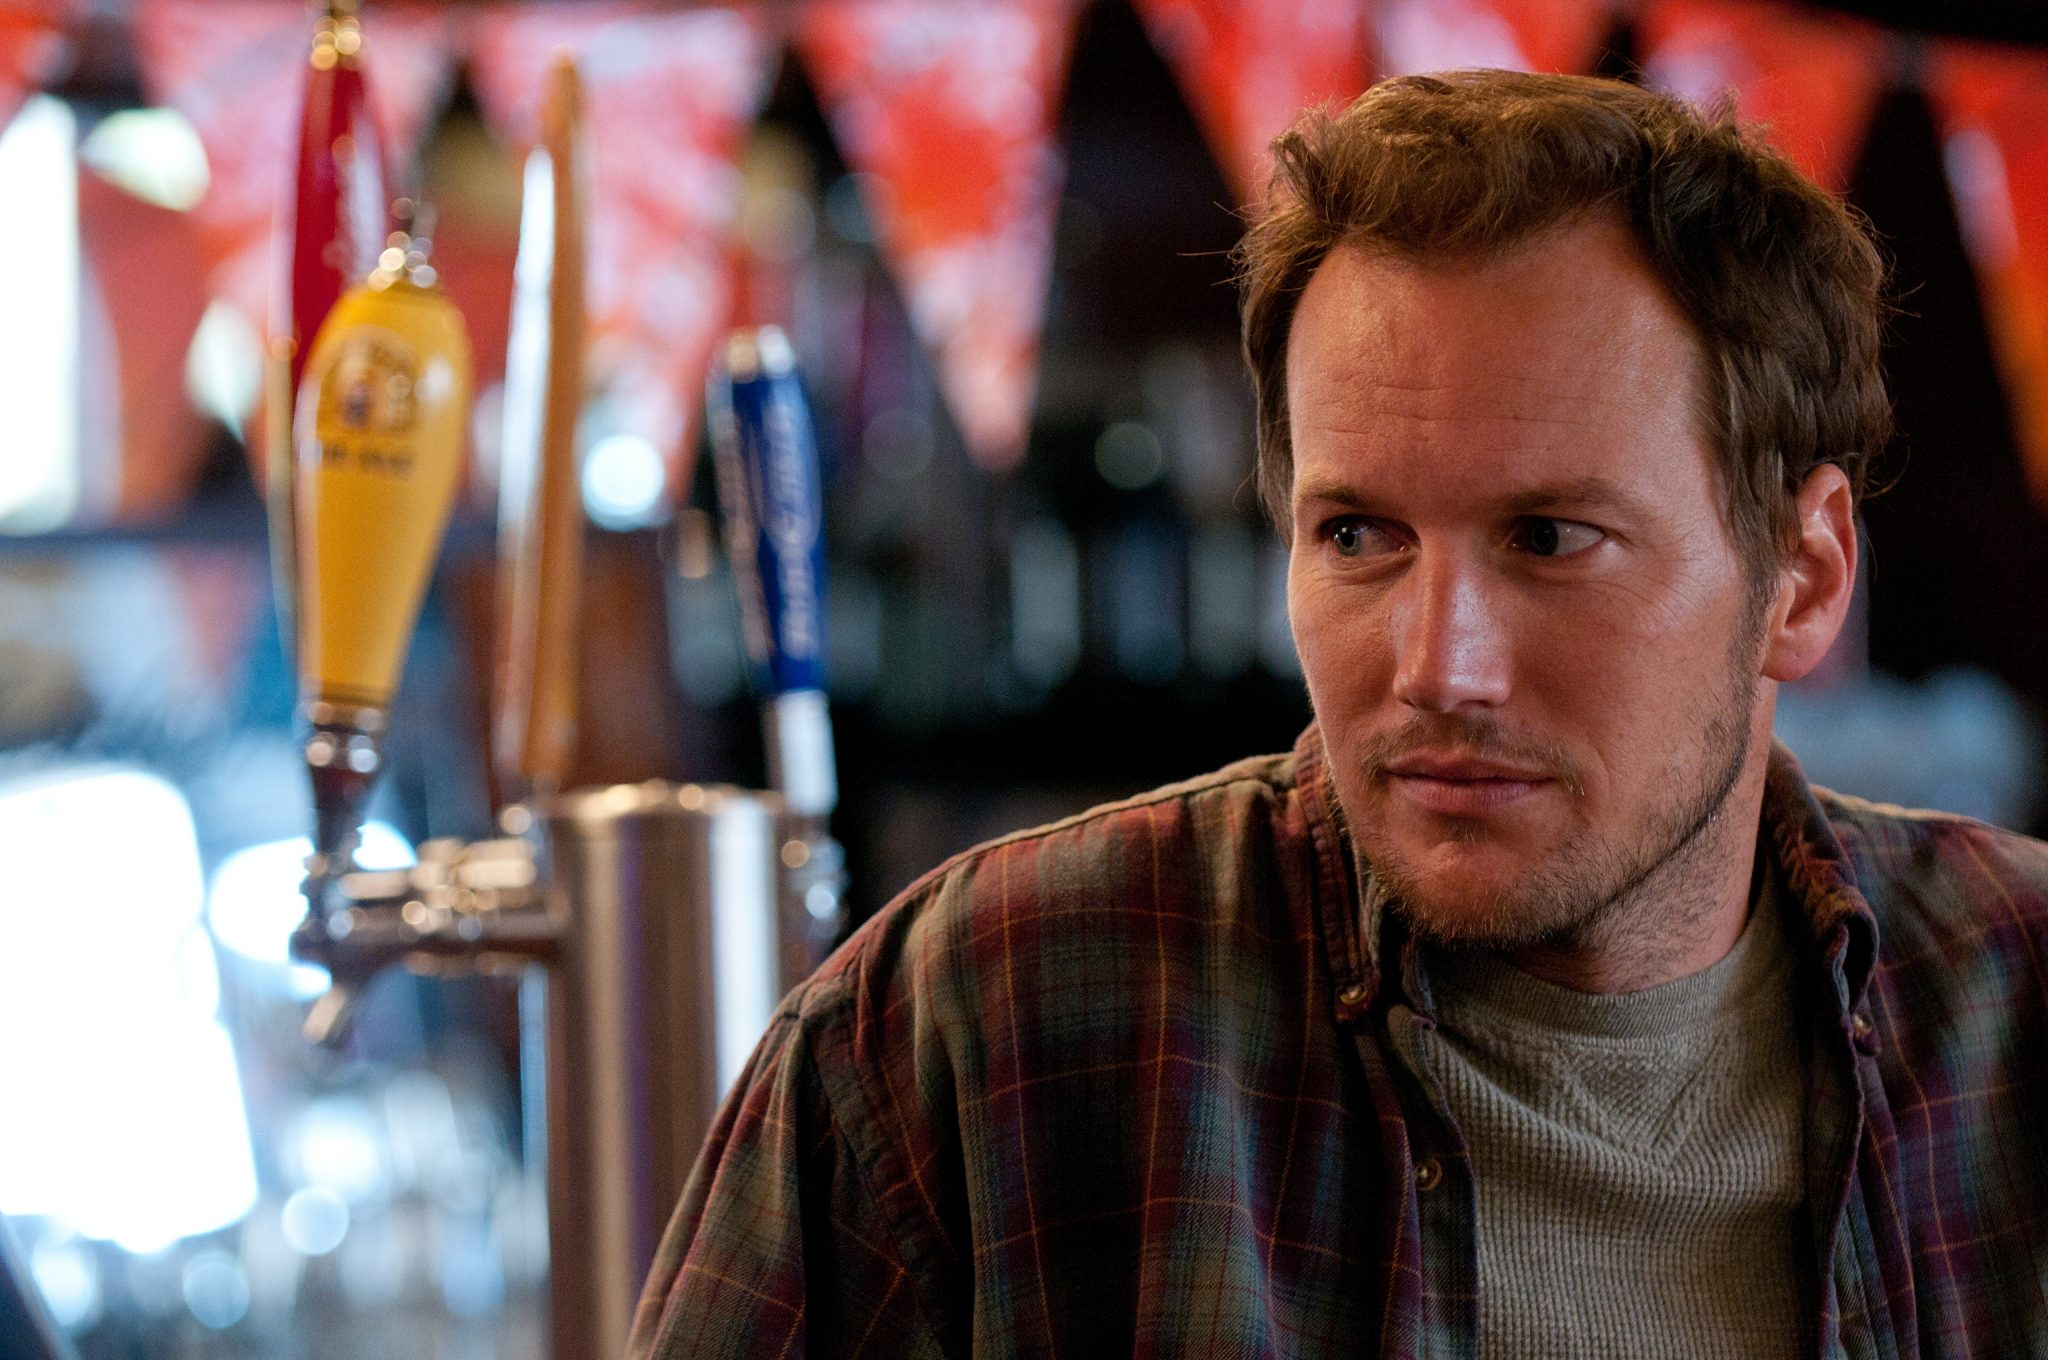 Patrick Wilson plays Buddy Slade in YOUNG ADULT, from Paramount Pictures and Mandate Pictures.